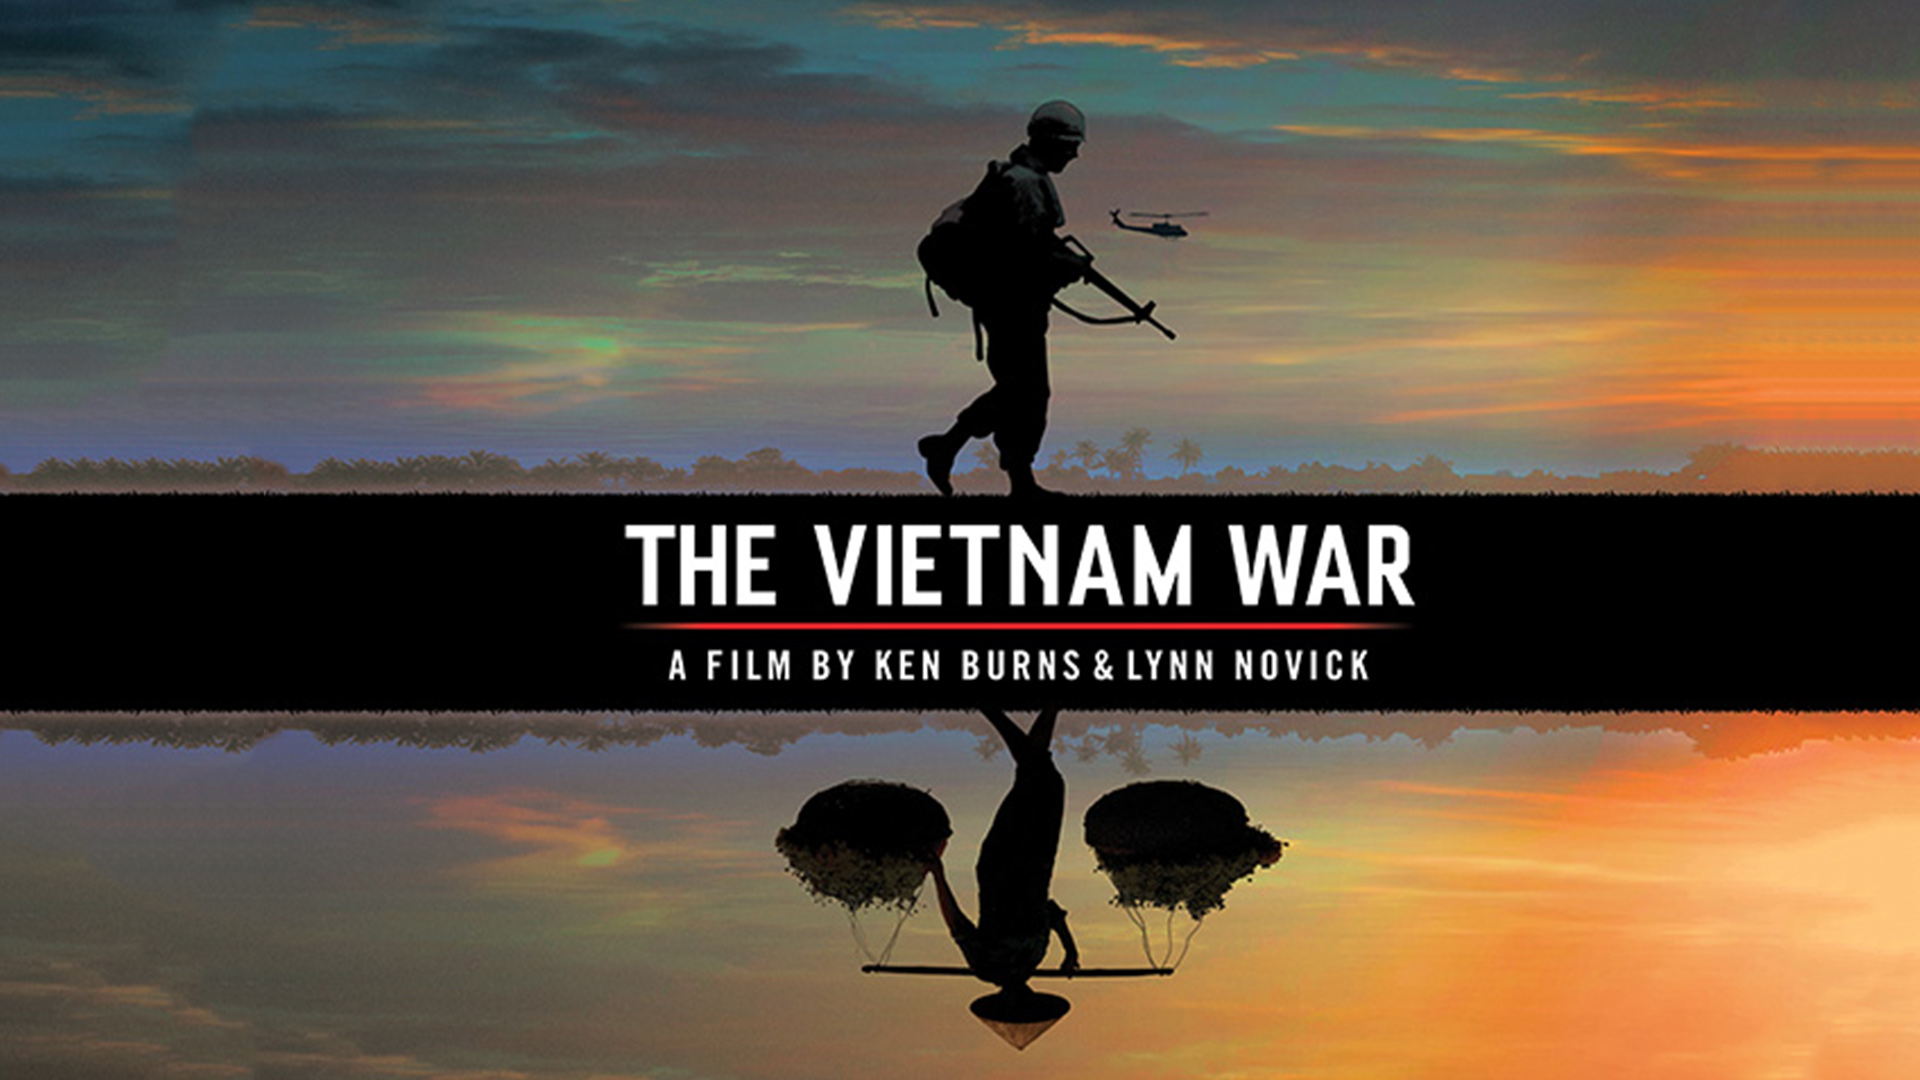 THE VIETNAM WAR - This Is What We Do